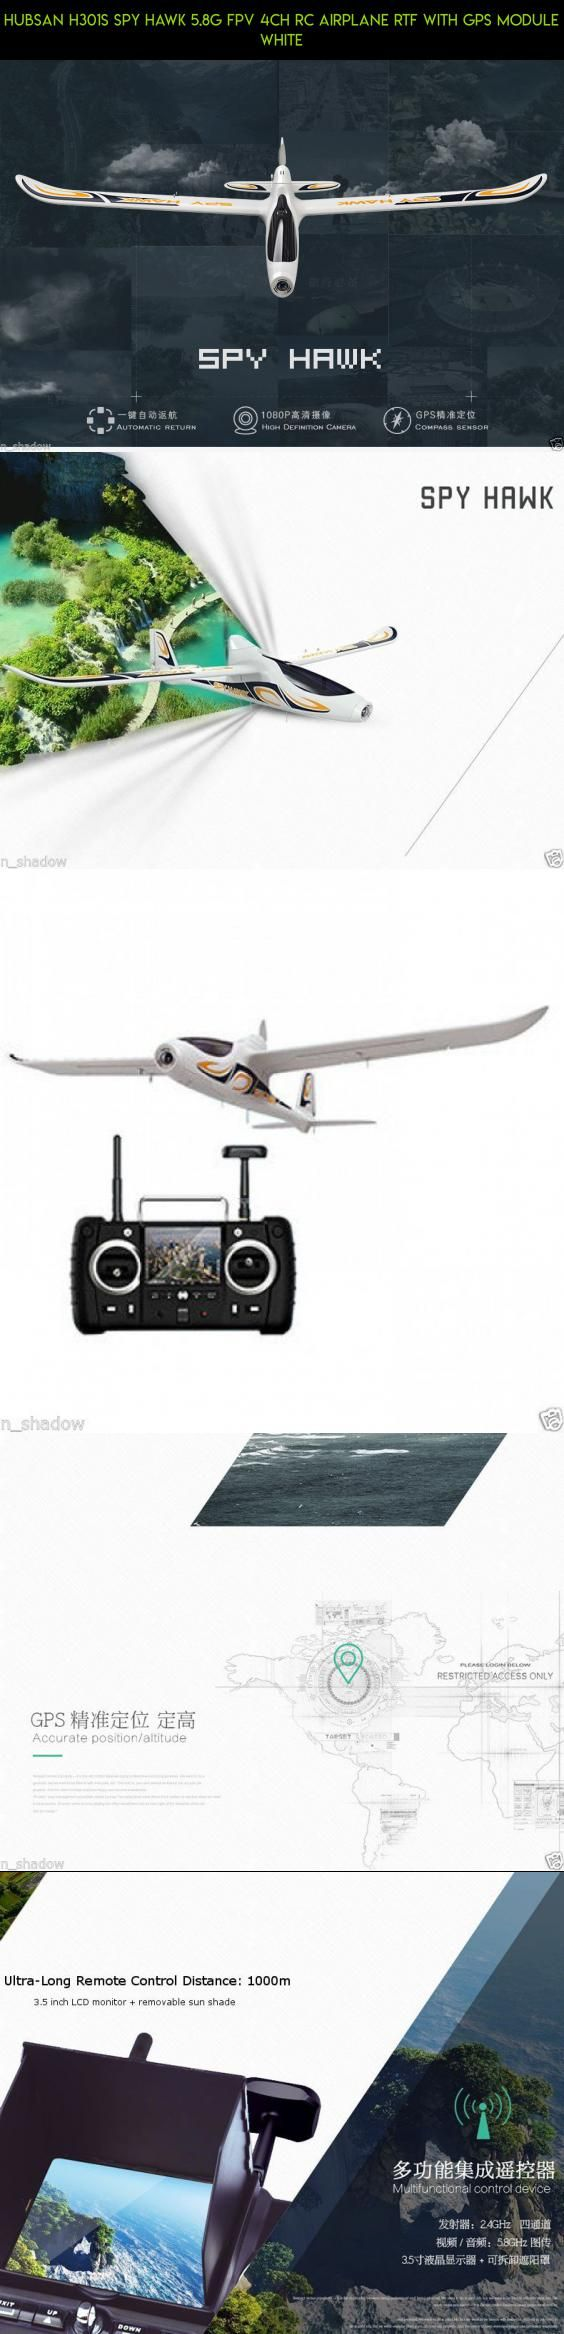 Hubsan H301S SPY HAWK 5.8G FPV 4CH RC Airplane RTF With GPS Module White #products #gadgets #shopping #plans #parts #fpv #tech #spy #hubsan #hawk #technology #drone #kit #camera #racing